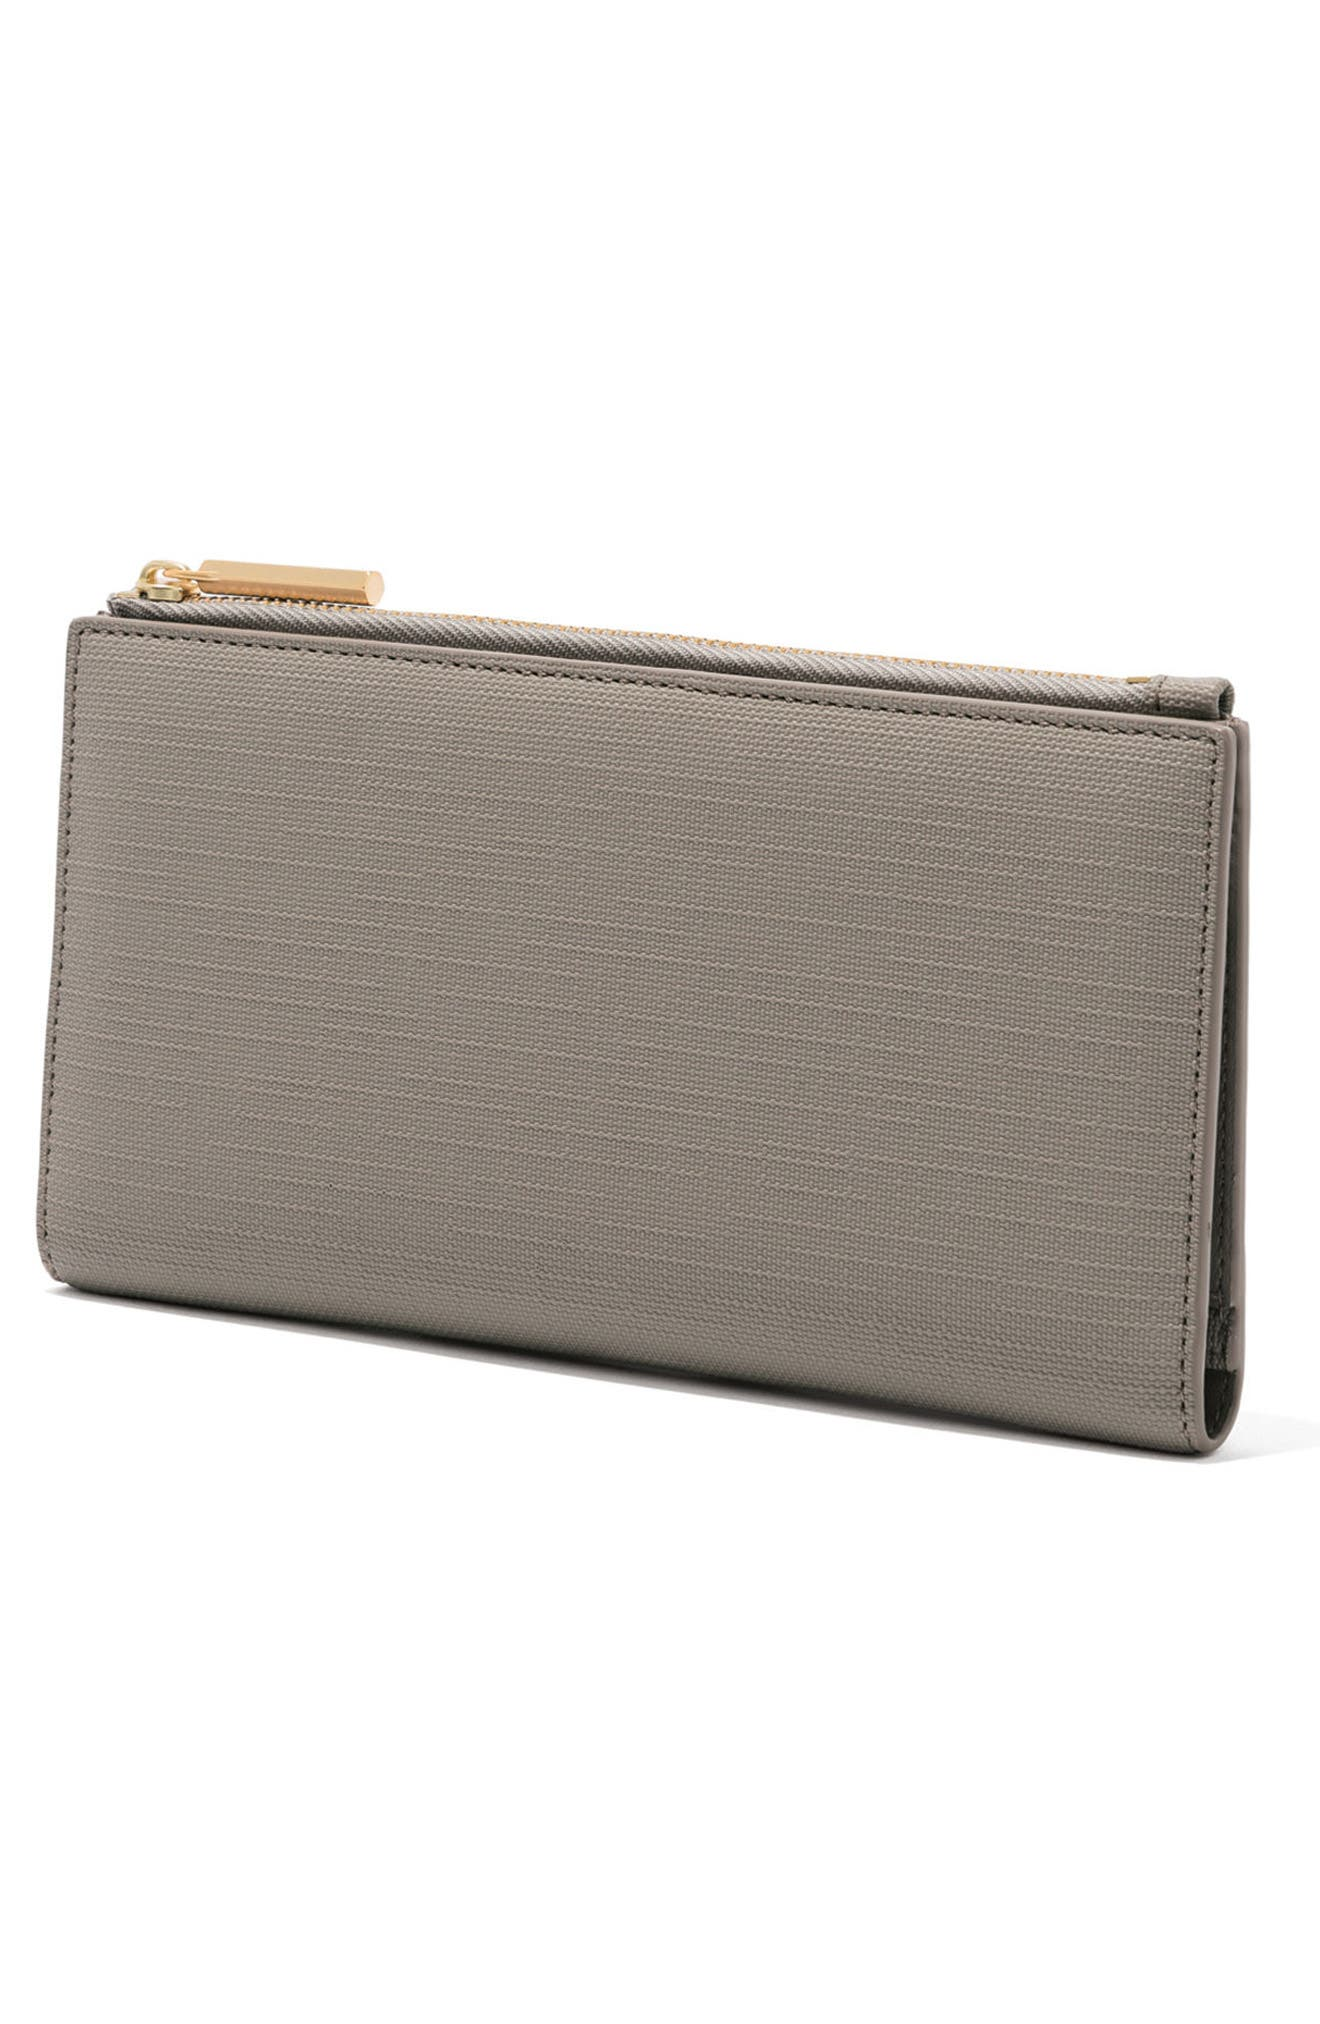 Signature Slim Coated Canvas Wallet,                             Alternate thumbnail 4, color,                             Bleecker Blush